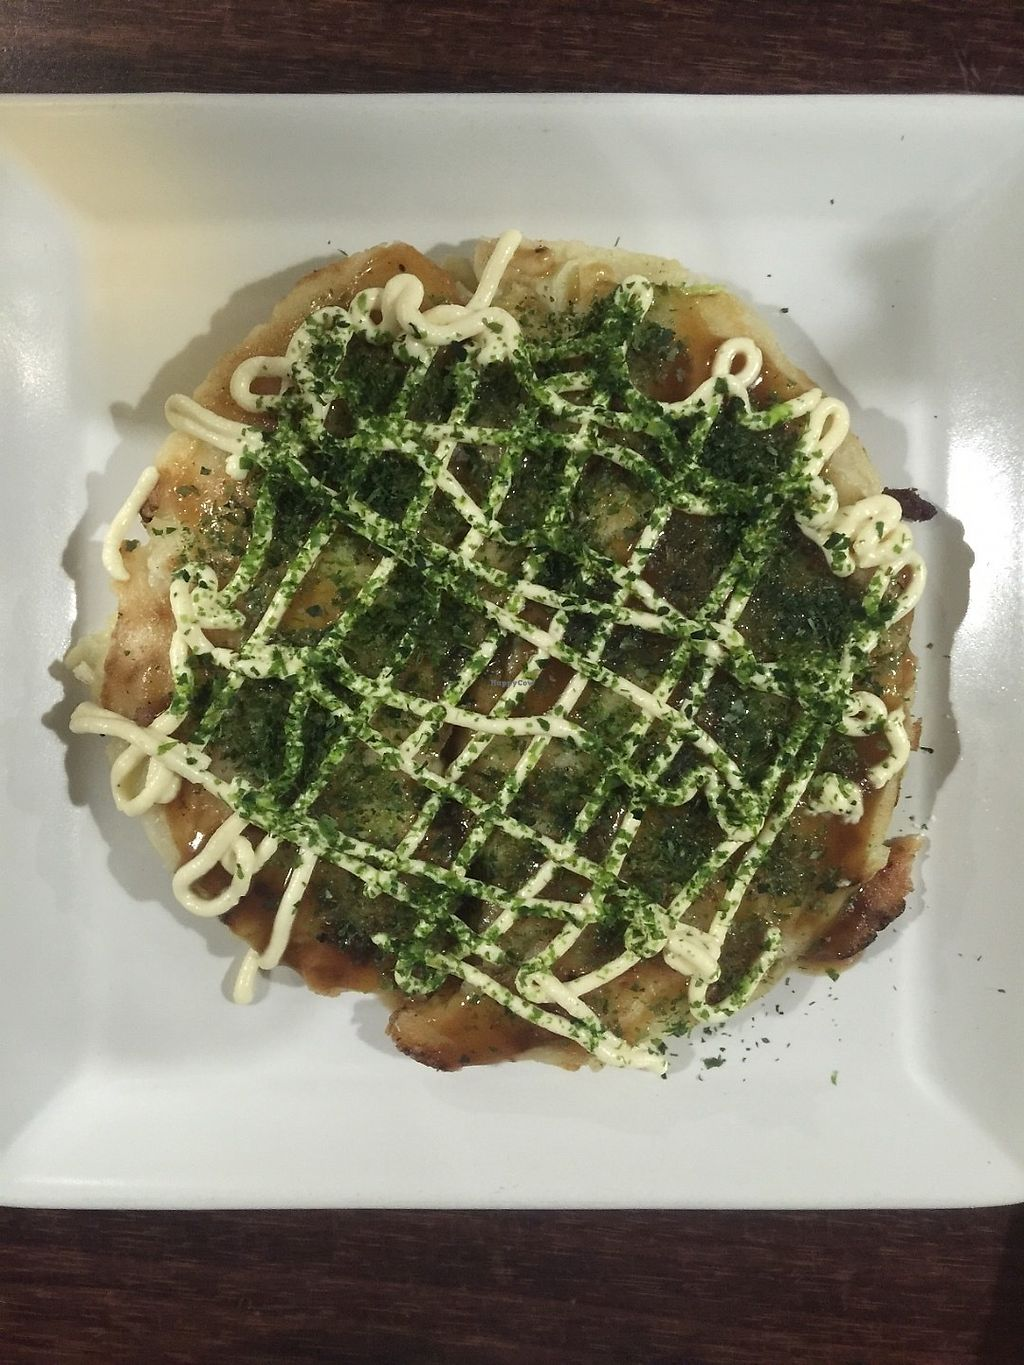 """Photo of Vegetable Kitchen Bar Aju  by <a href=""""/members/profile/Brieeeeayy"""">Brieeeeayy</a> <br/>Okonomiyaki  <br/> June 15, 2017  - <a href='/contact/abuse/image/24359/269350'>Report</a>"""